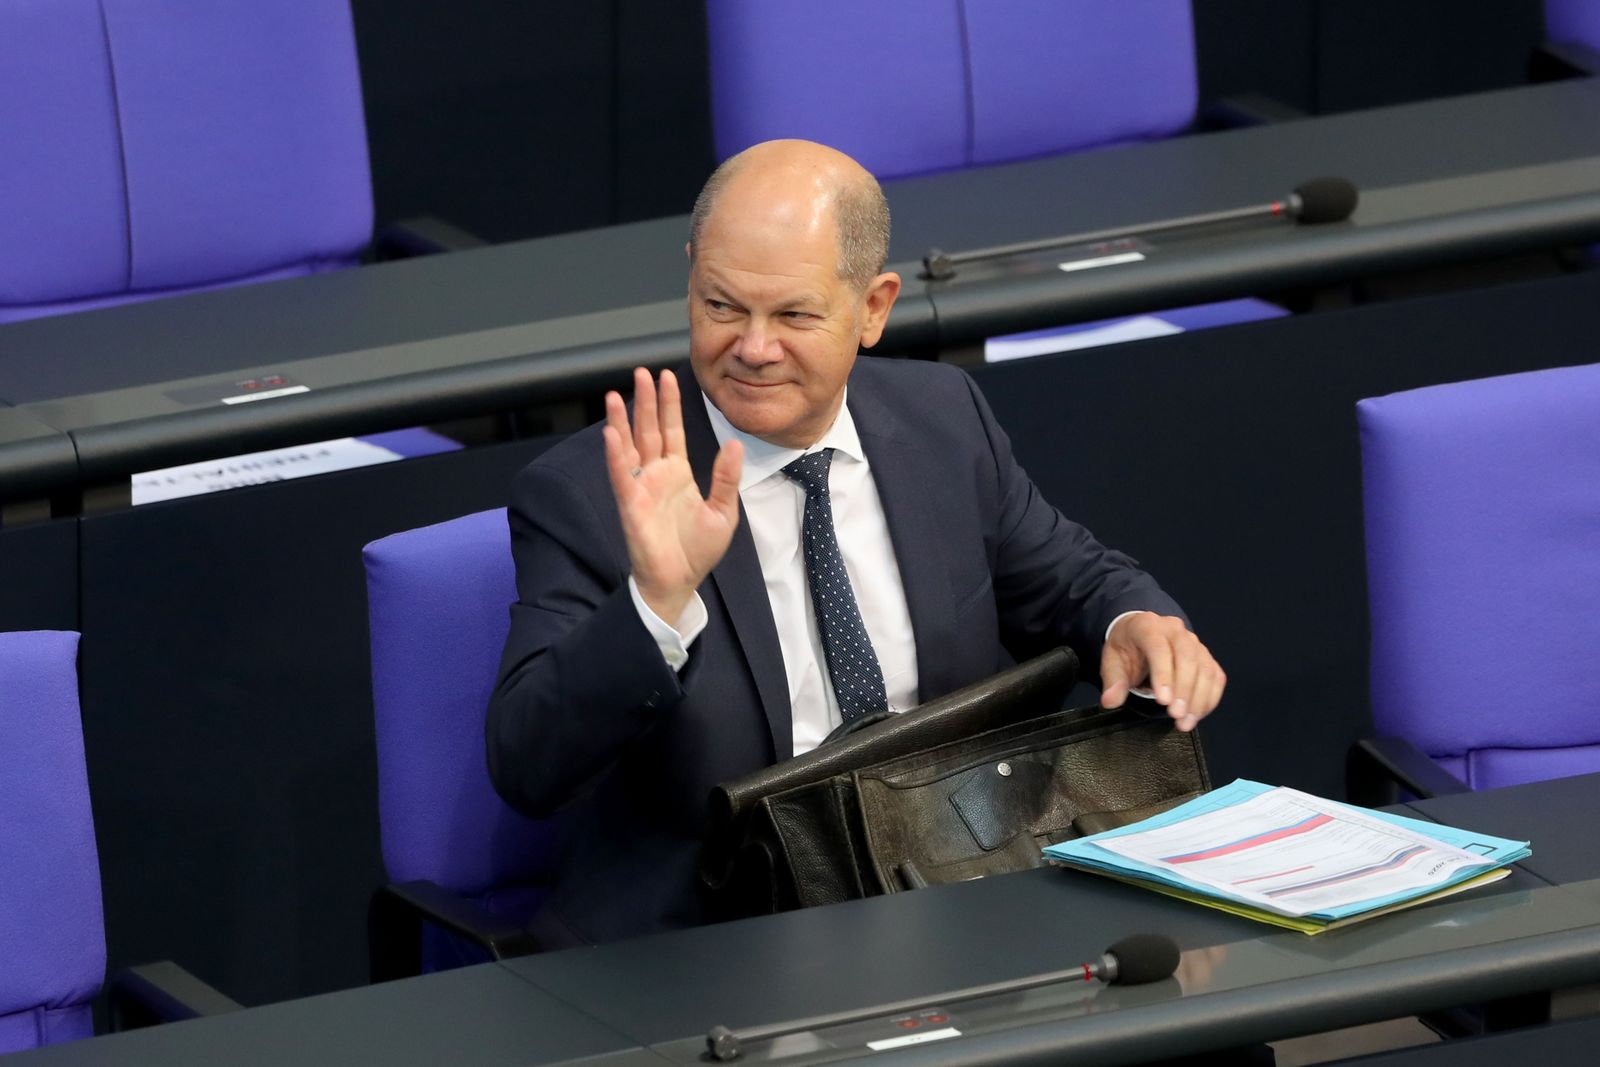 Olaf Scholz becomes SPD candidate for chancellor, Berlin, Germany - 02 Jul 2020